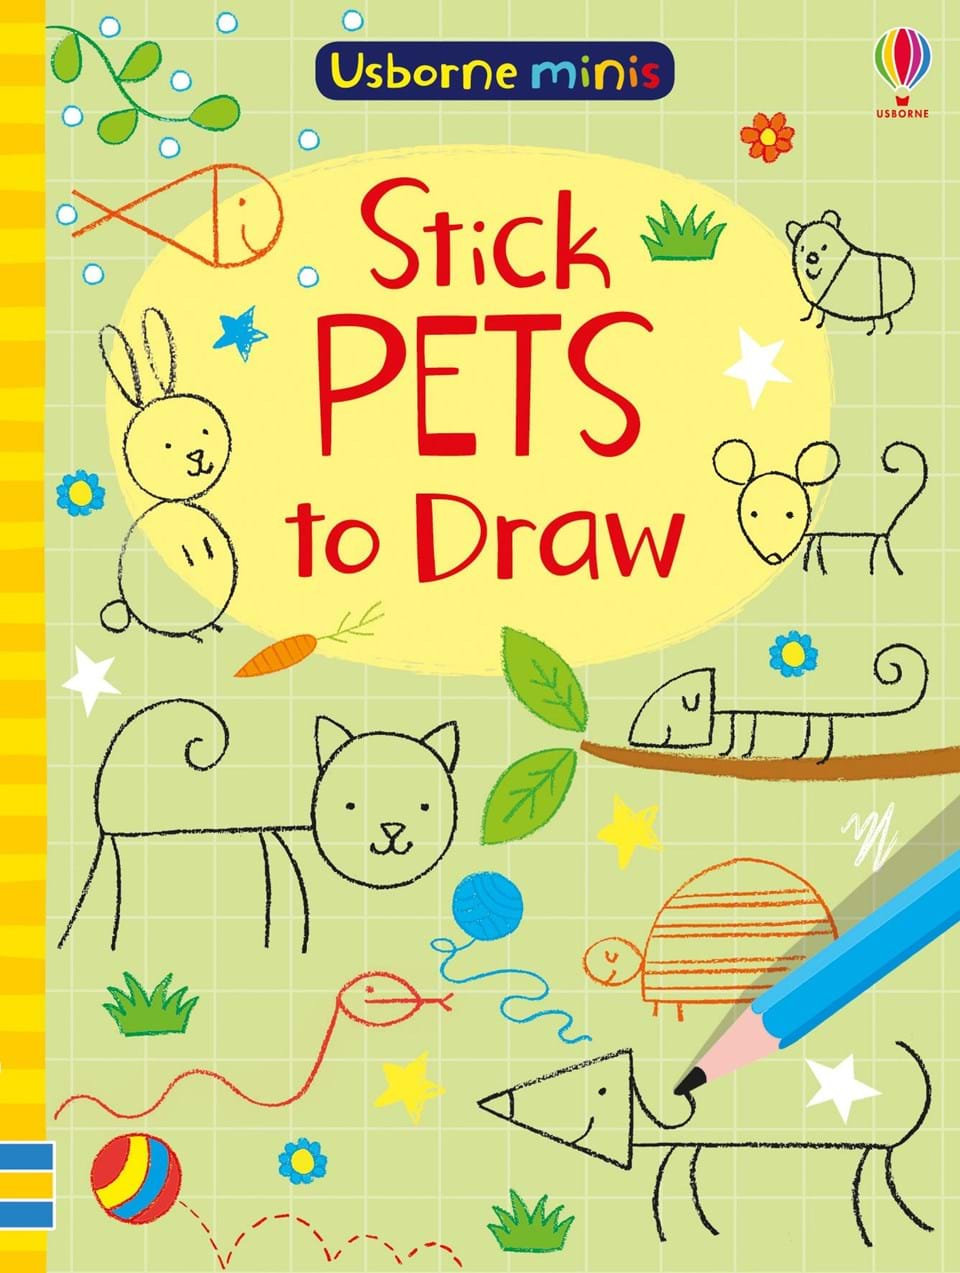 Stick pets to draw new chinese stick drawing books by feile bird studios happy stick figure painted 10 000 cases